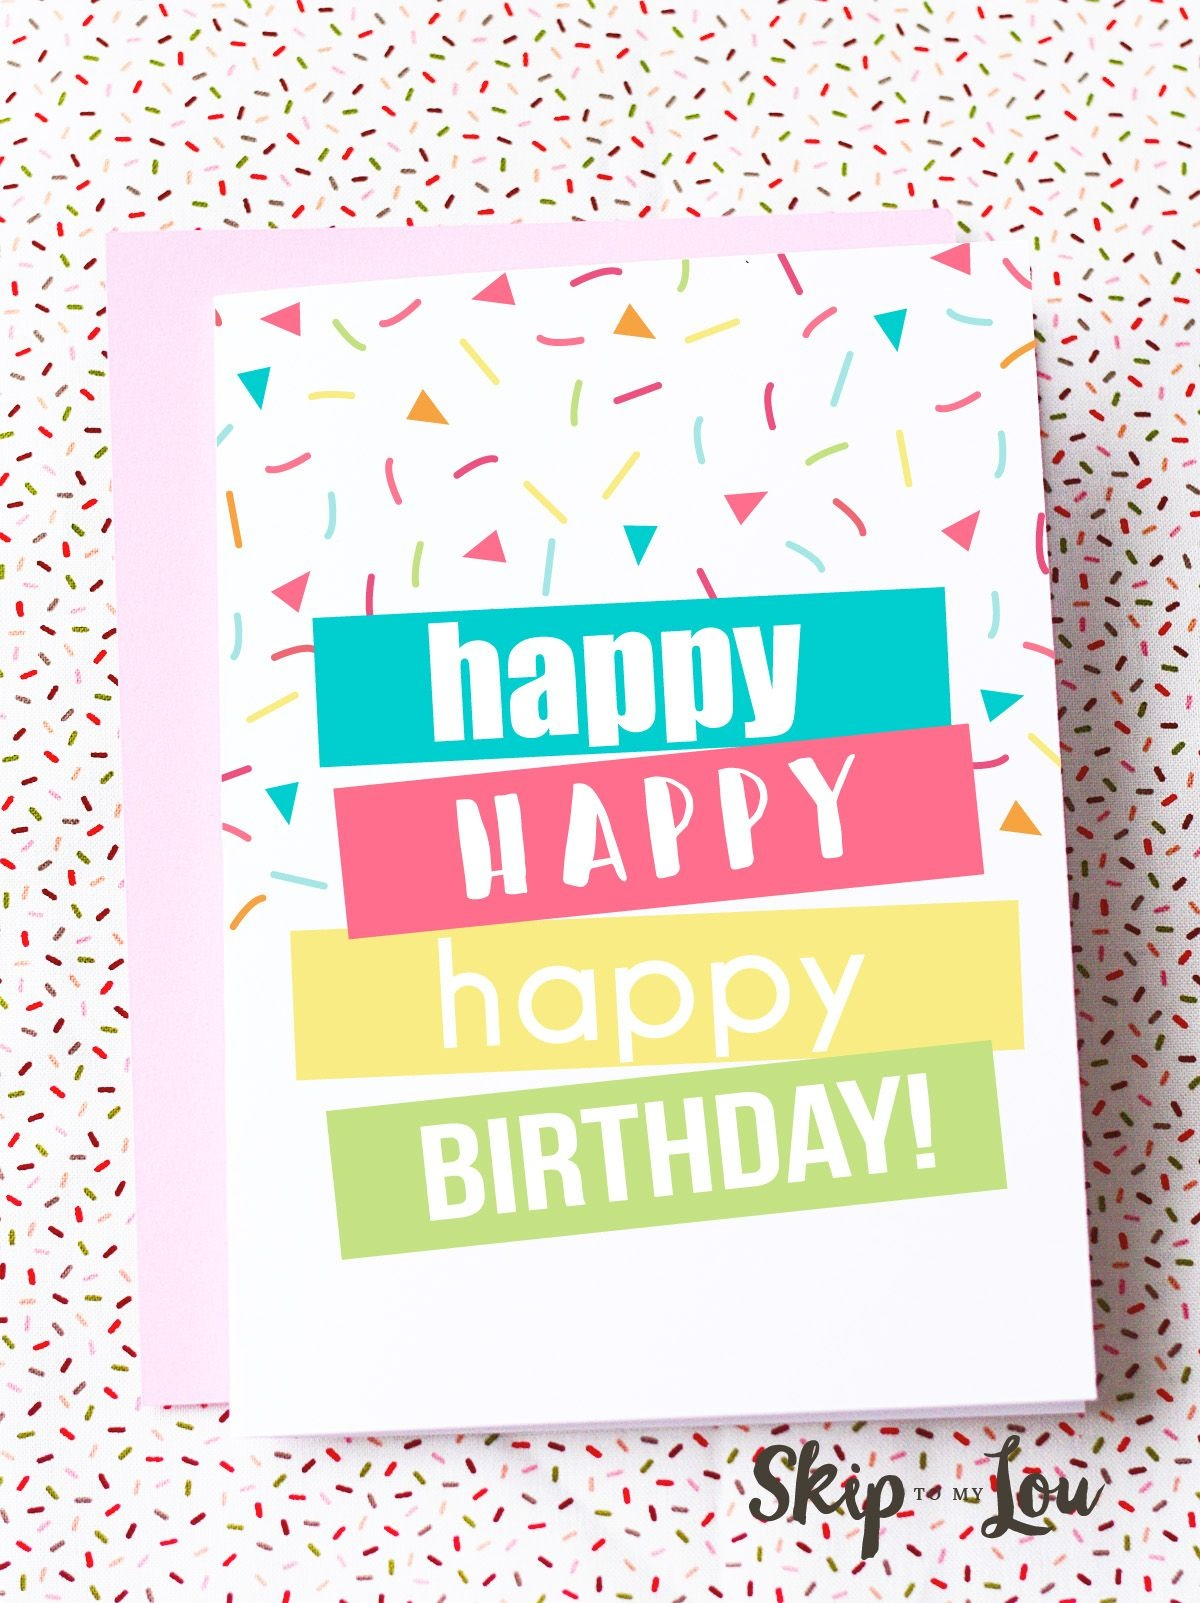 Free Printable Birthday Cards | Best Of Pinterest | Free Printable - Free Printable Birthday Cards For Wife